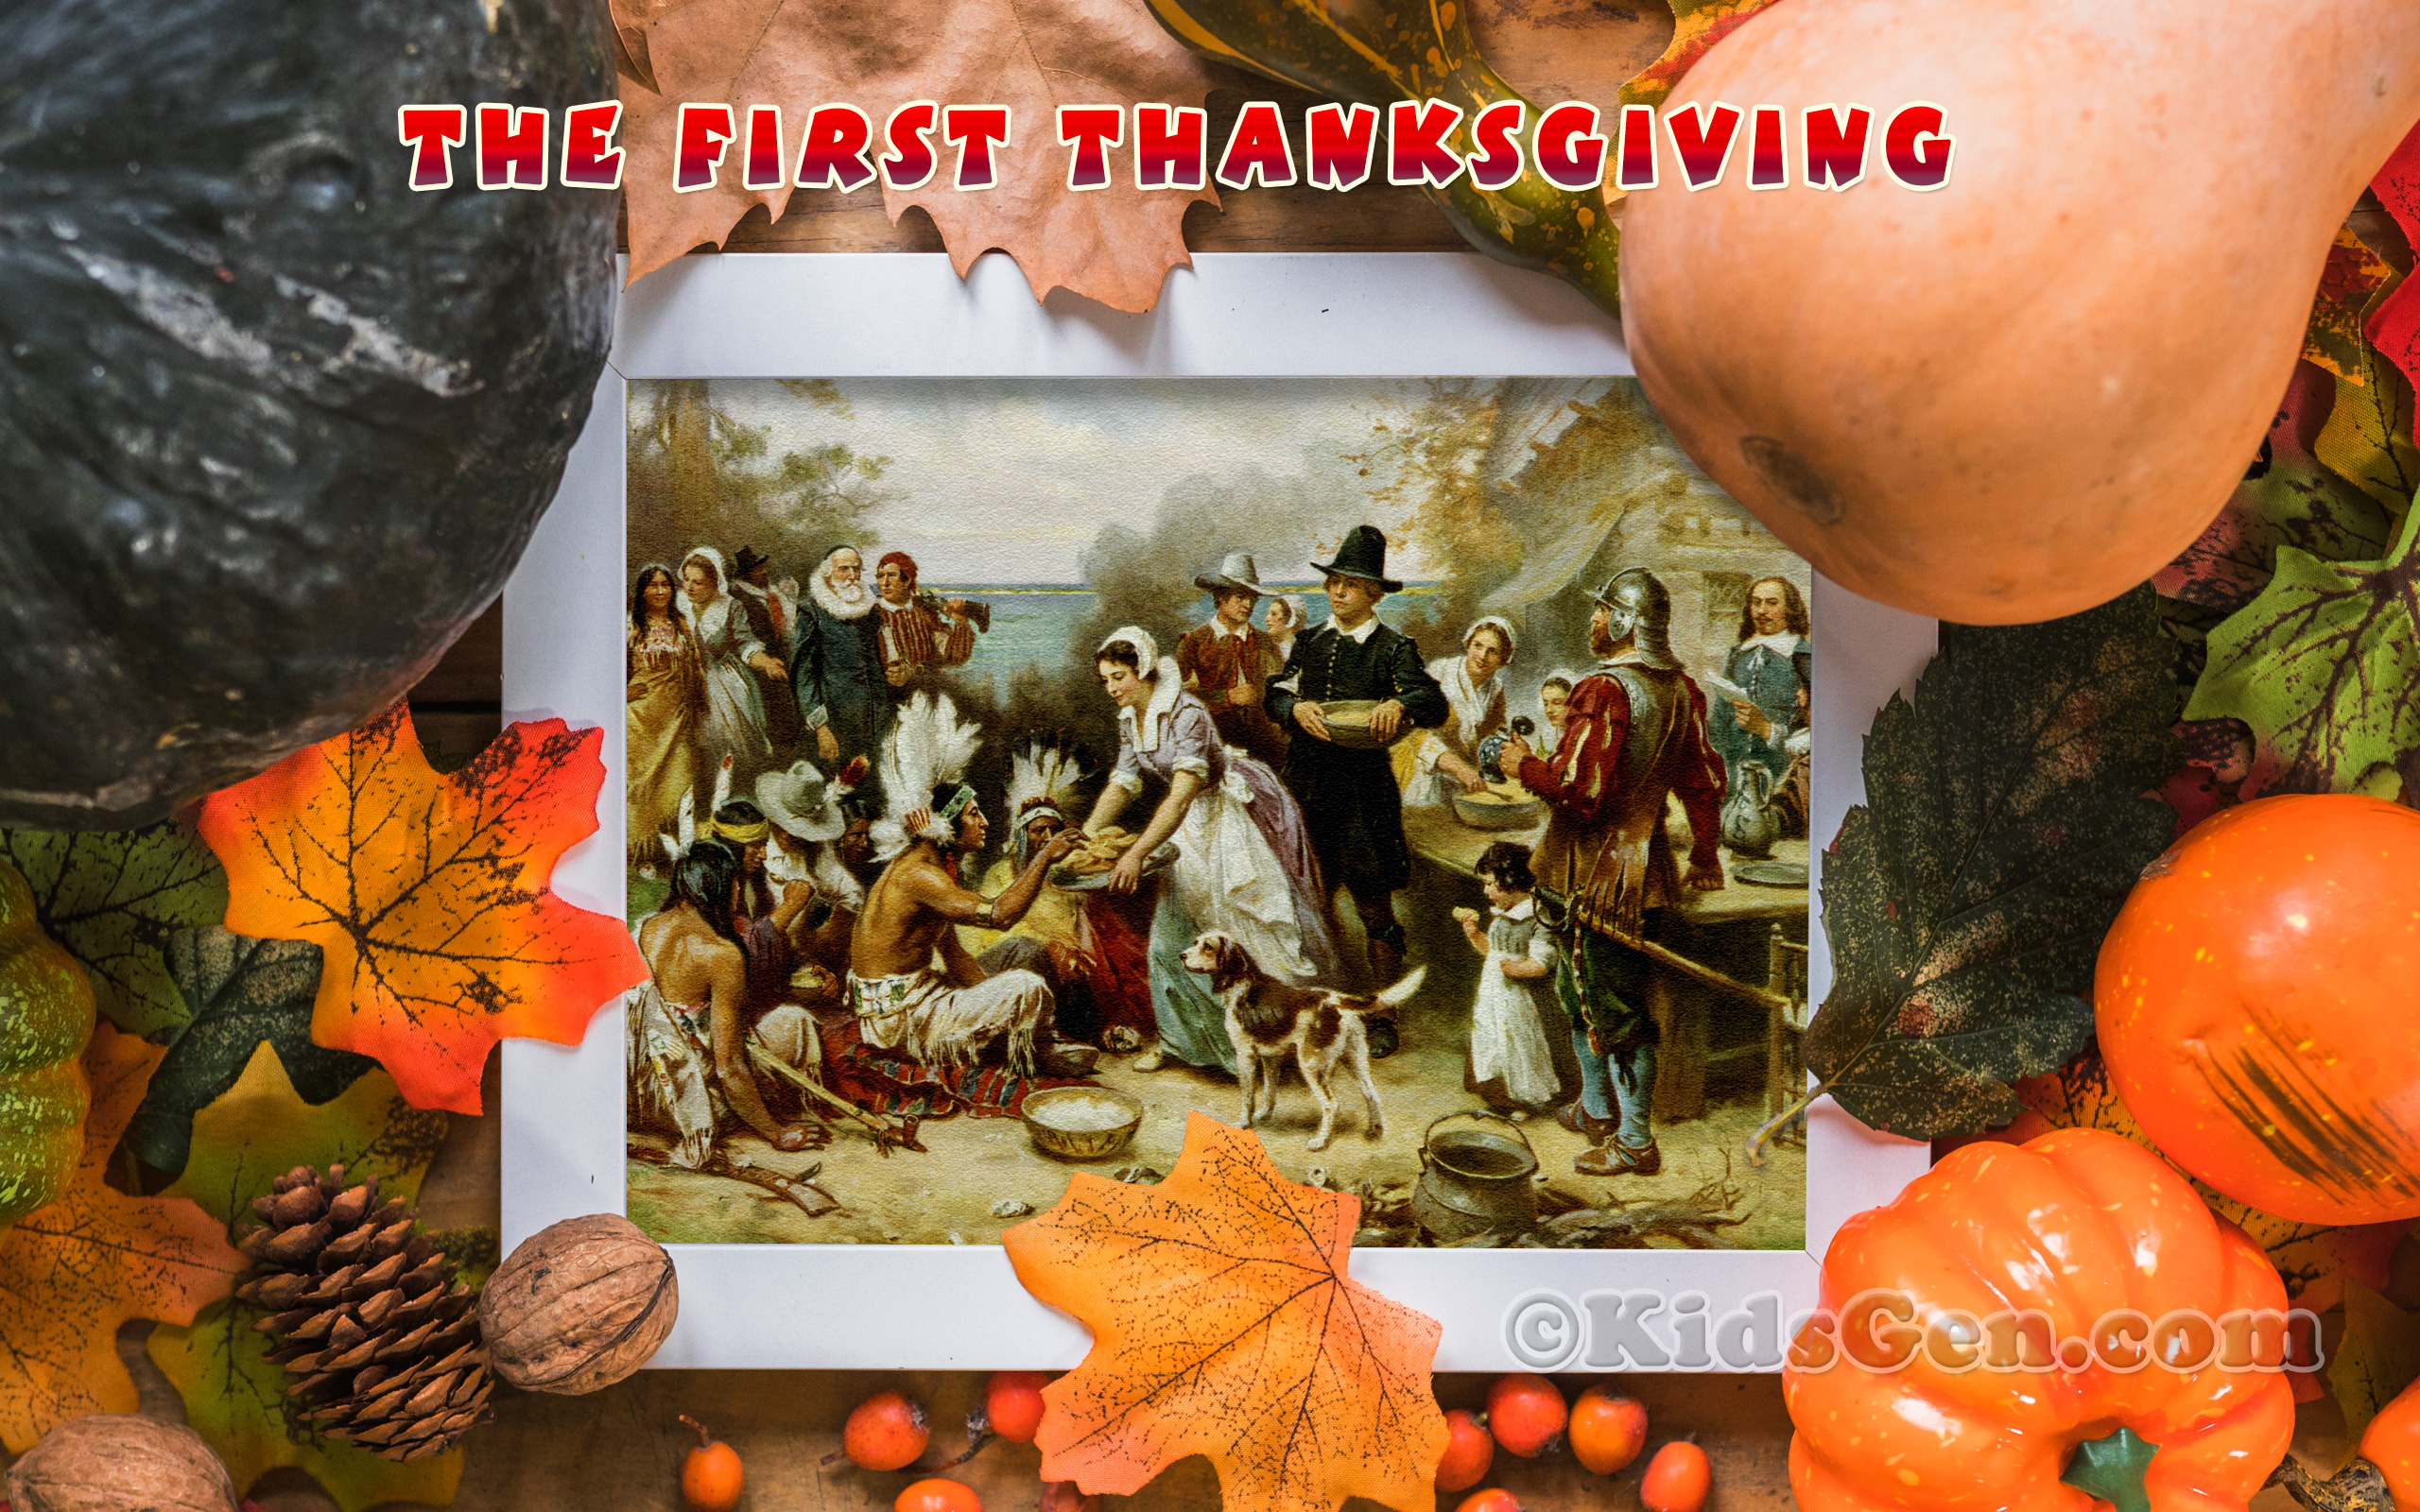 Hd Wallpaper Of The First Thanksgiving - Happy Thanksgiving Native Americans - HD Wallpaper